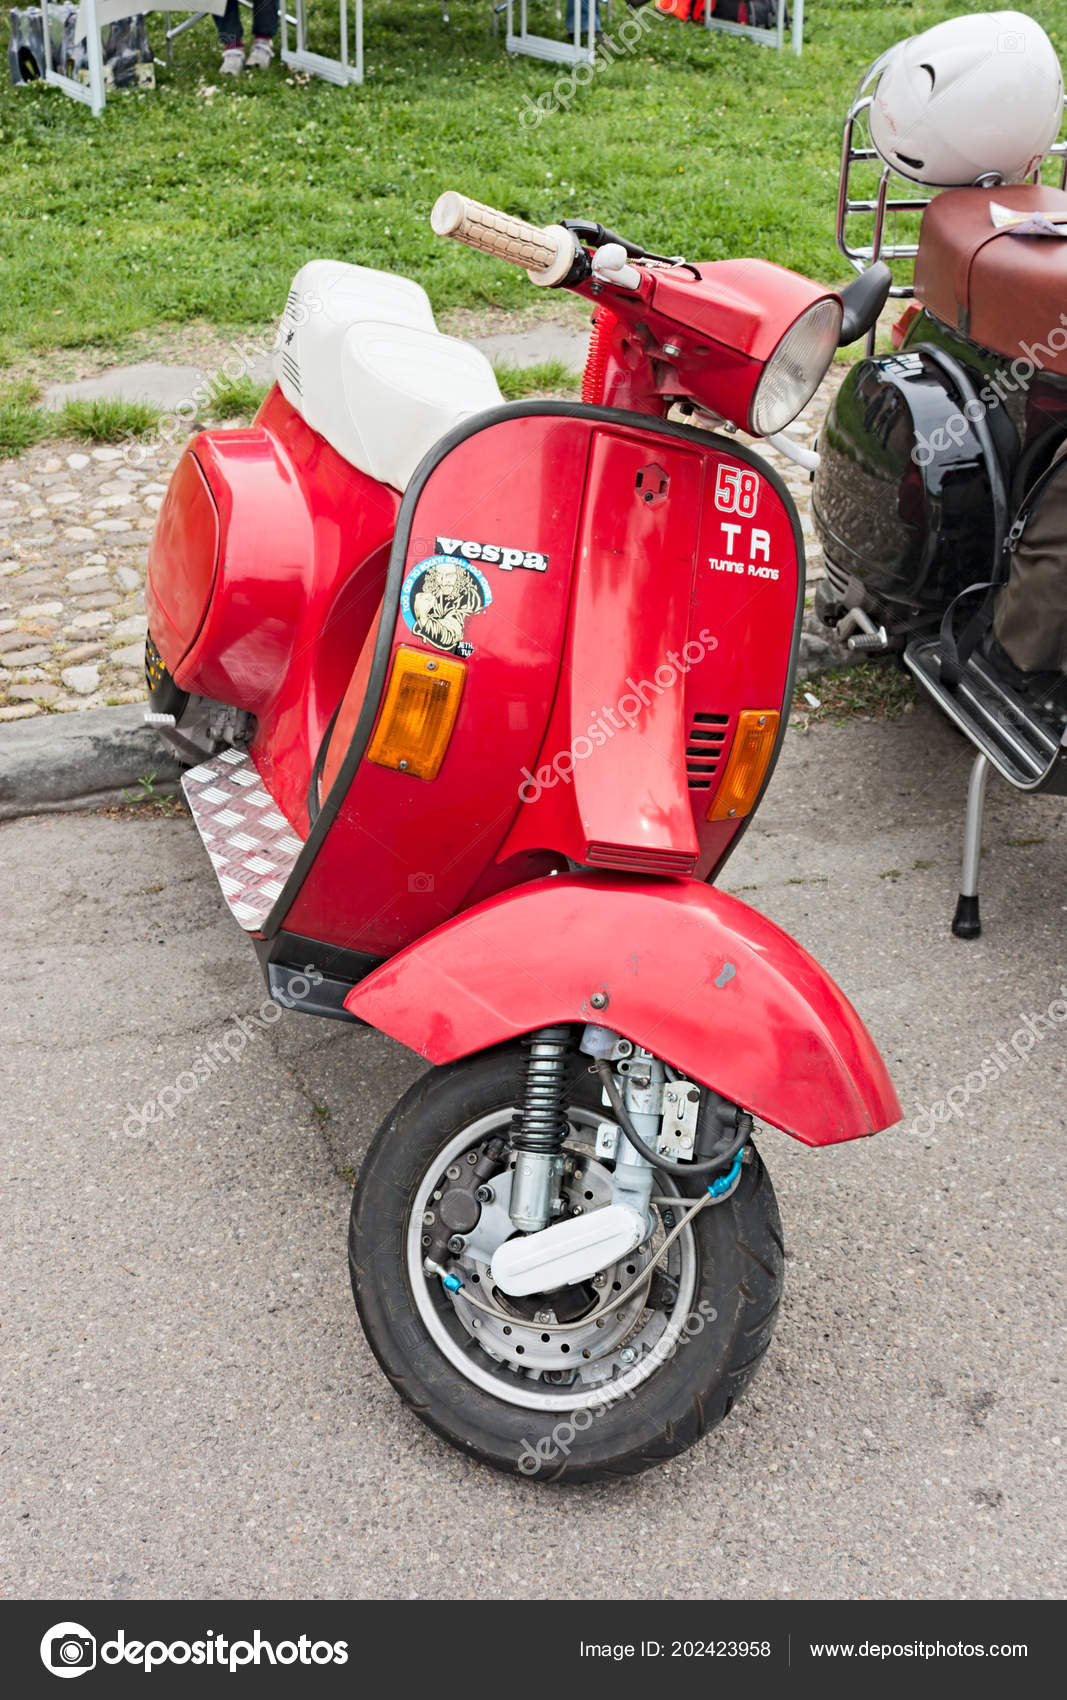 Images Vespa Modified Italian Scooter Tuning Vintage Vespa Modified Disc Brake Motorcycle Rally Stock Editorial Photo C Ermess 202423958